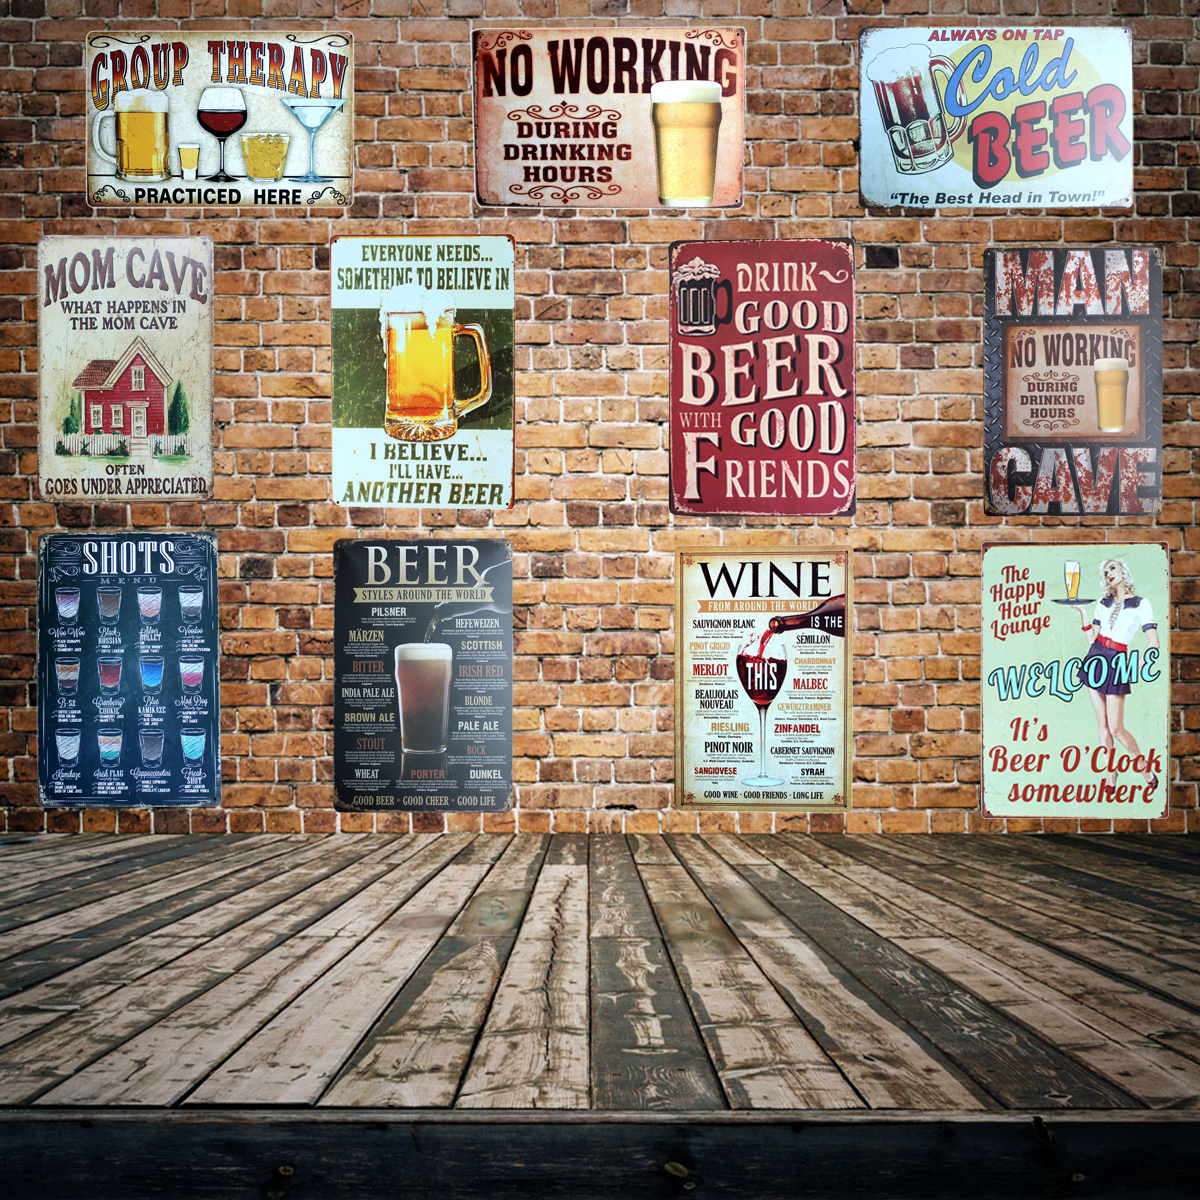 [ Mike86 ] Beer Pratice Here Metal Sign PUB Home